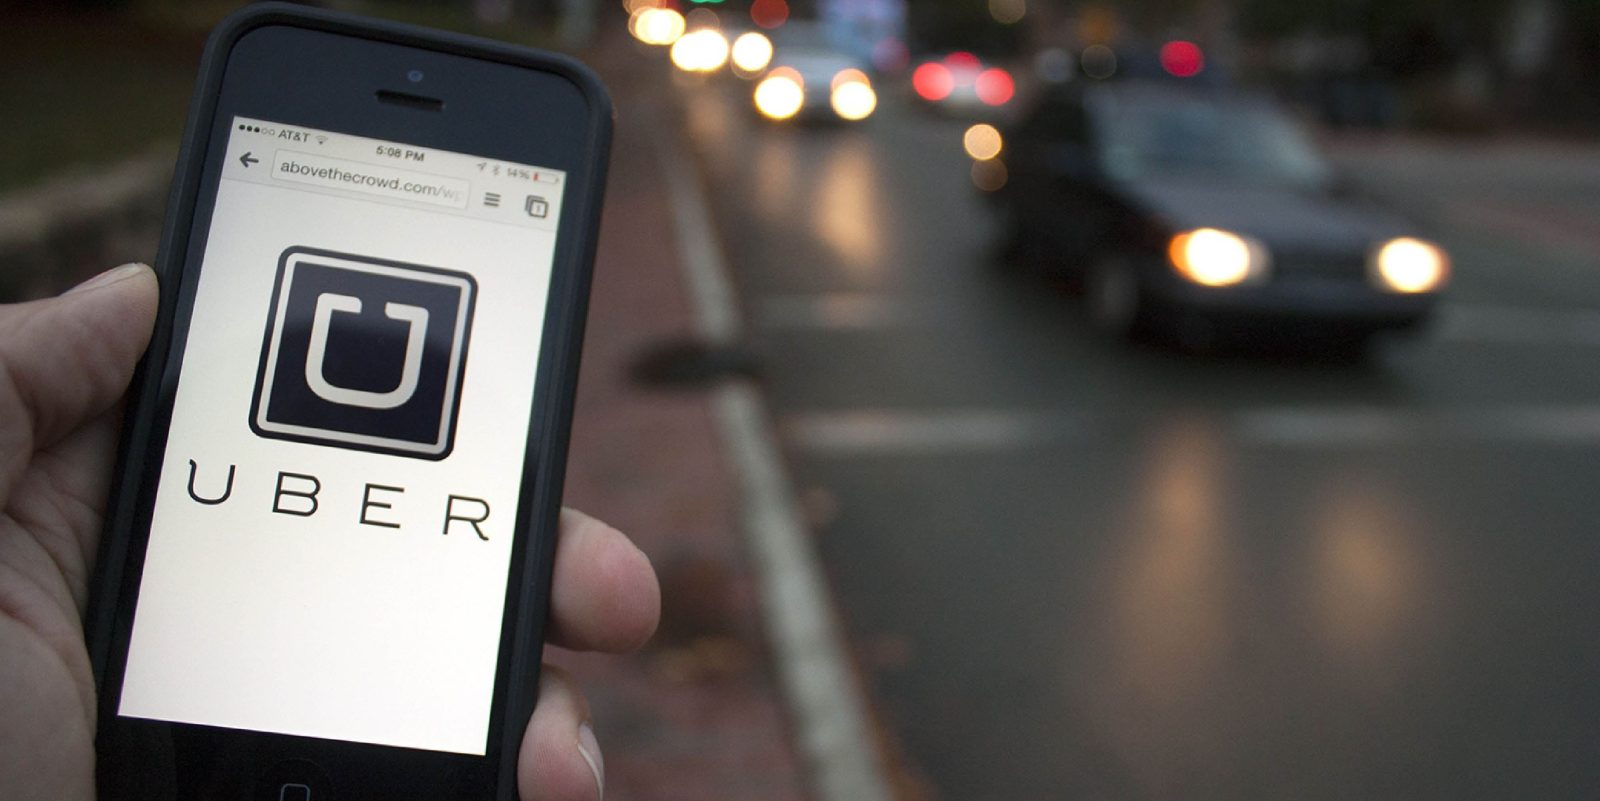 Take 10% off your next Uber ride with these discounted gift cards